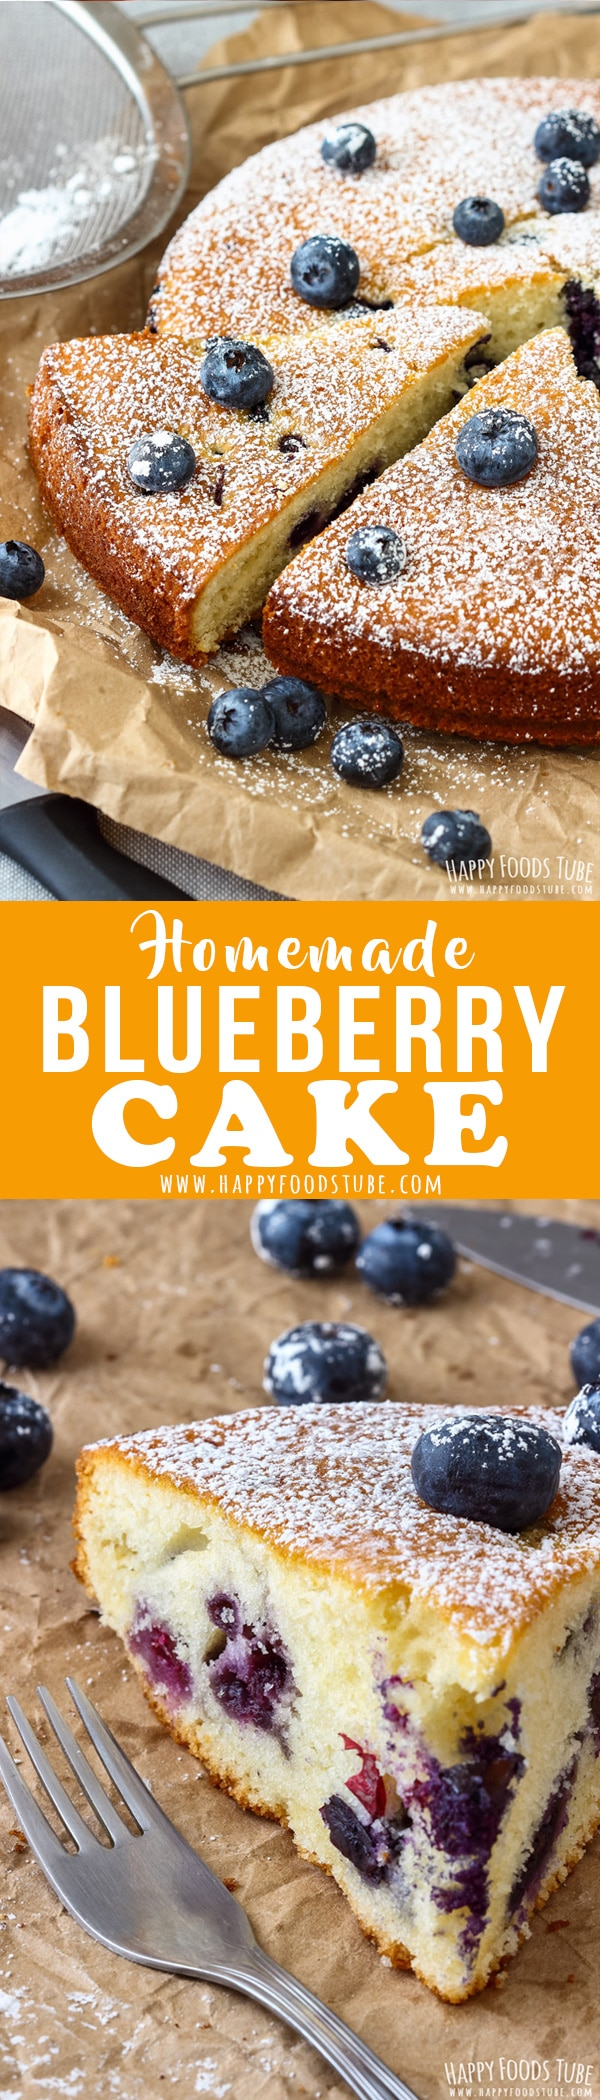 This Homemade Blueberry Cake is our family's favorite recipe. It's quick to whip up, it's soft and light and perfect with a cup of your favorite tea or coffee. Grandmother's recipe that is always a hit. #blueberrycake #baking #dessert #recipe #cake #blueberry #homemade #howtomake #simple #easy #moist #fromscratch